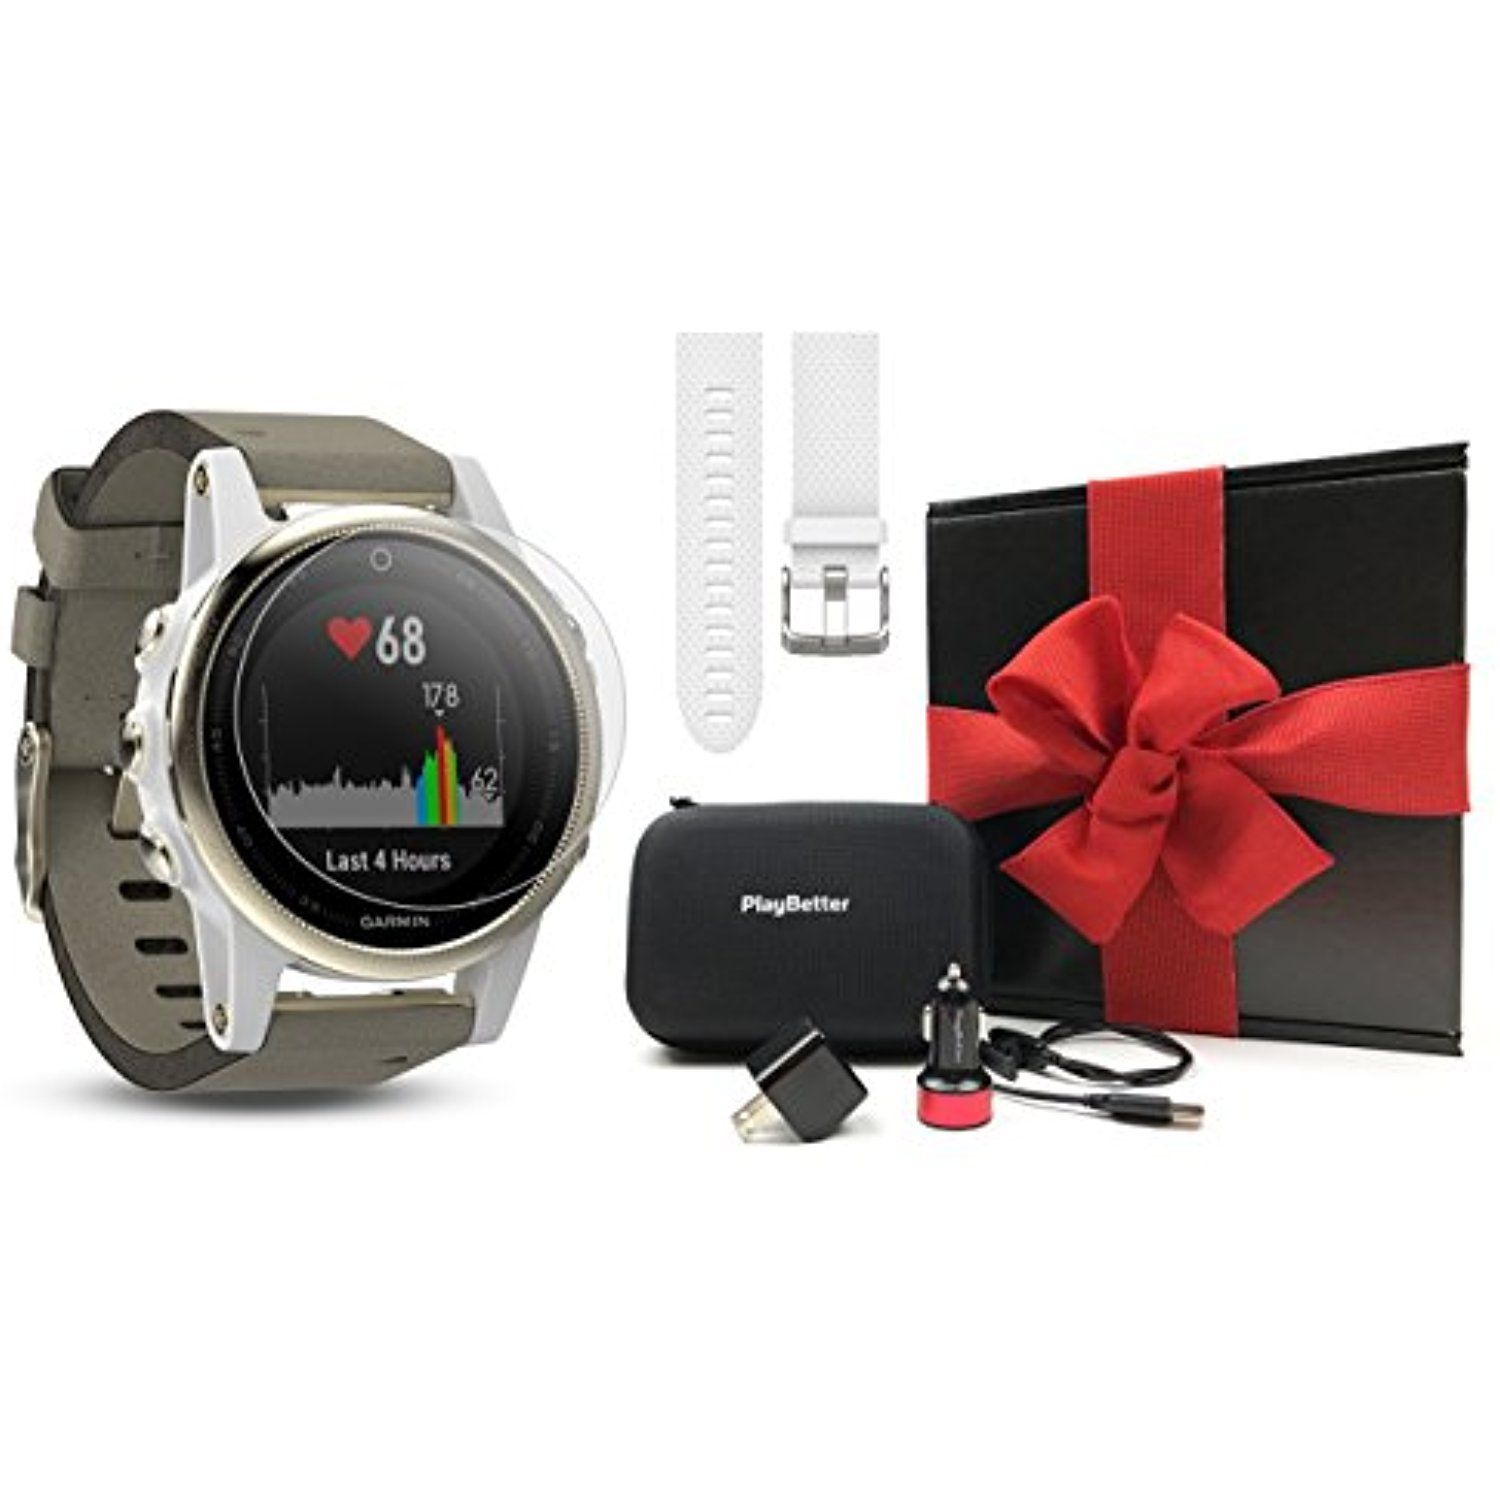 c3c27926eef Garmin fenix 5S Sapphire (Champagne with Suede Band) GIFT BOX Bundle |  Includes Extra Band (White), Screen Protector, PlayBetter USB Car/Wall  Adapters, ...